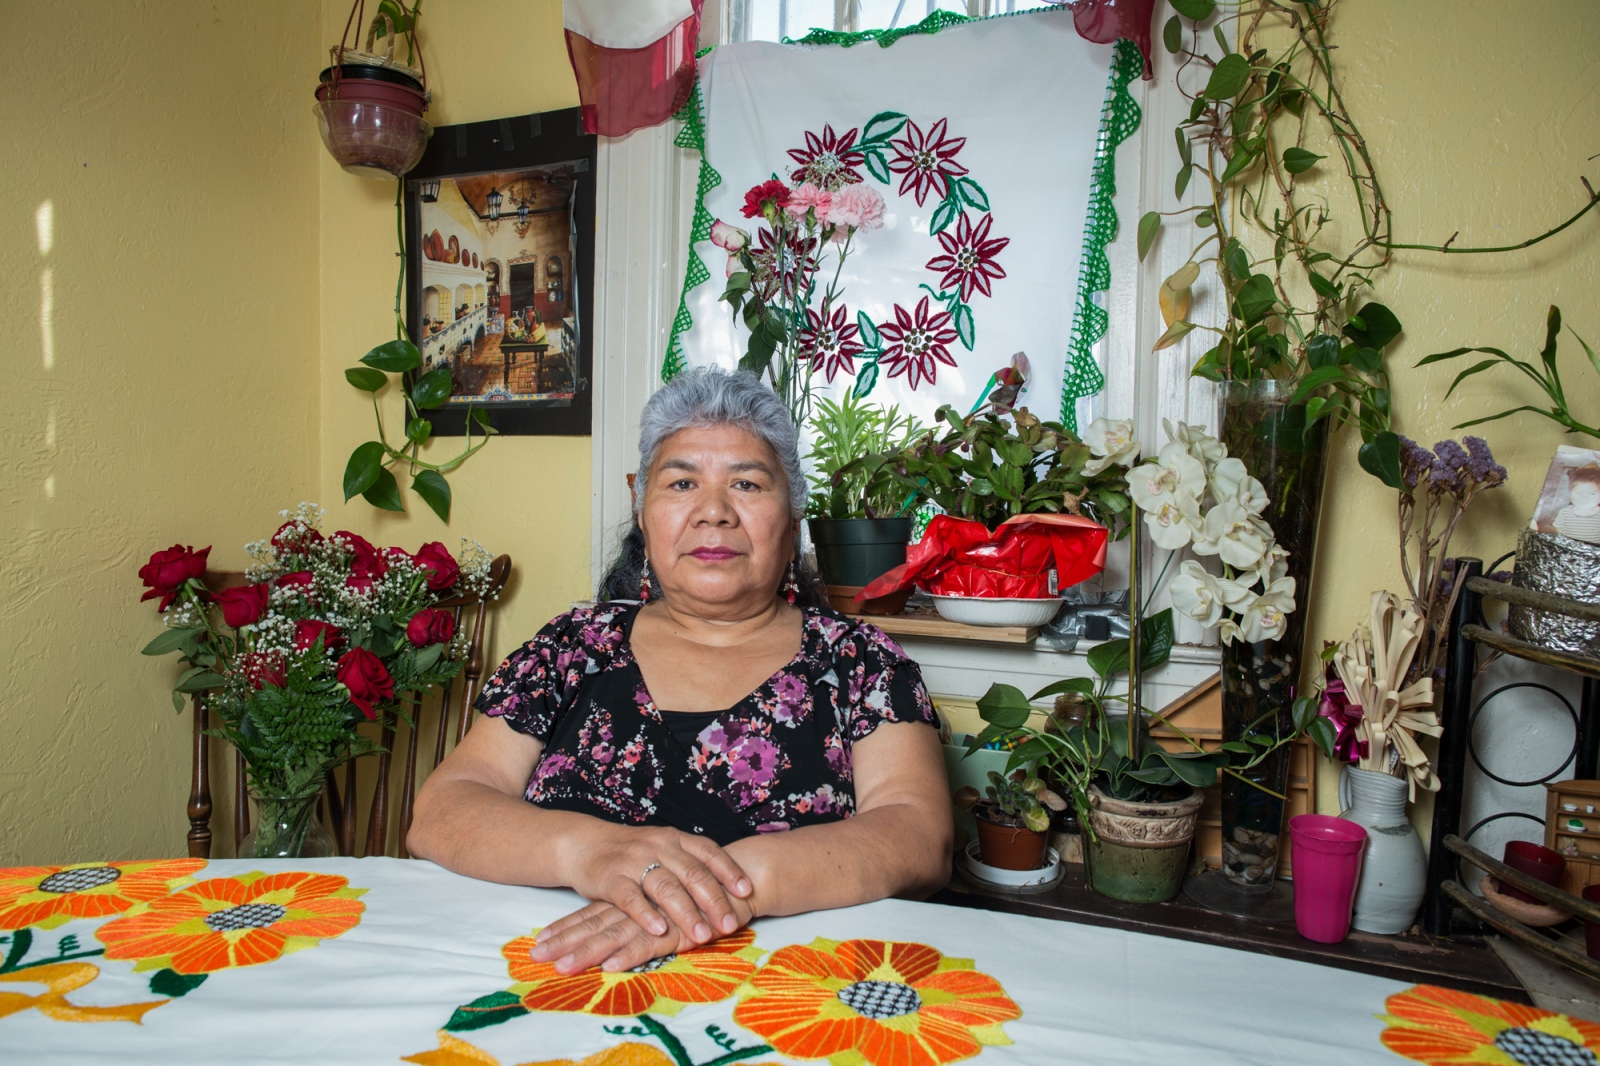 Honorina Moran from Huajuapan De León, Oaxaca, she is 67 years old and lives in Long Island city with her family. Honorina came to New York 12 years ago, crossing the Mexican border to reunite herself with her family because all of her daughters and grandchildren live in the United States.